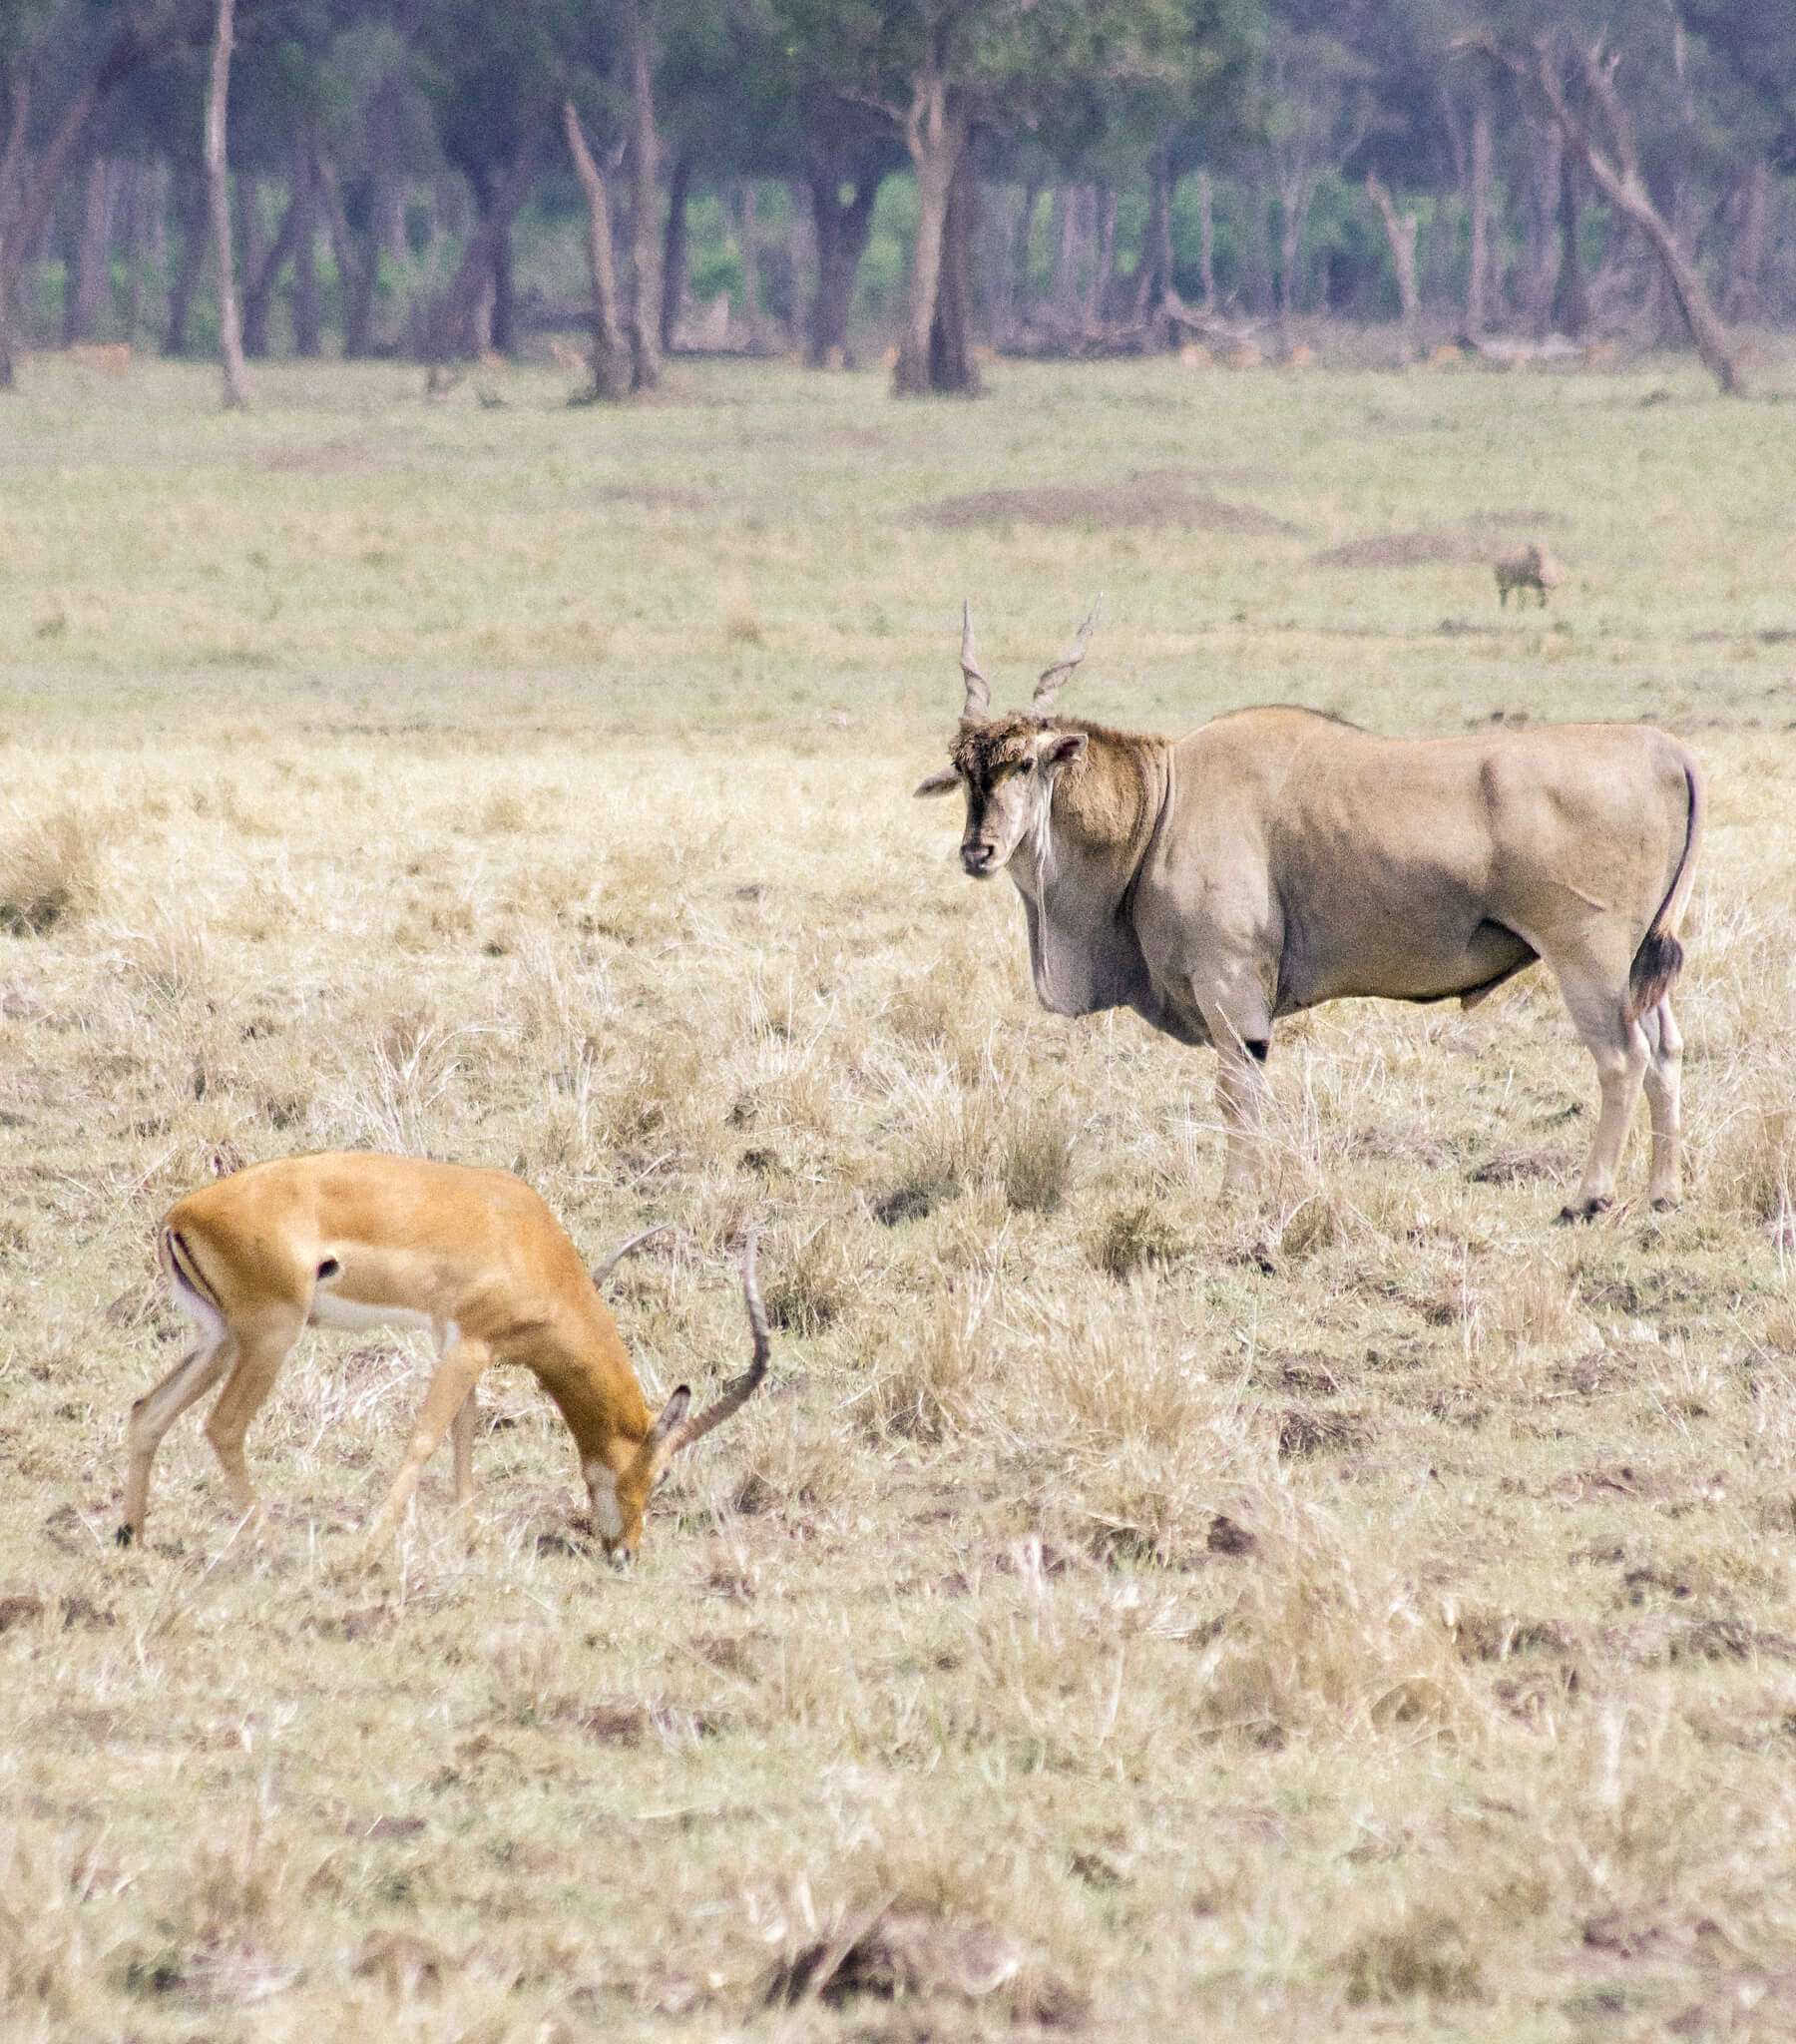 The largest antelope in the Maasai Mara, with a smaller antelope breed standing infront of it